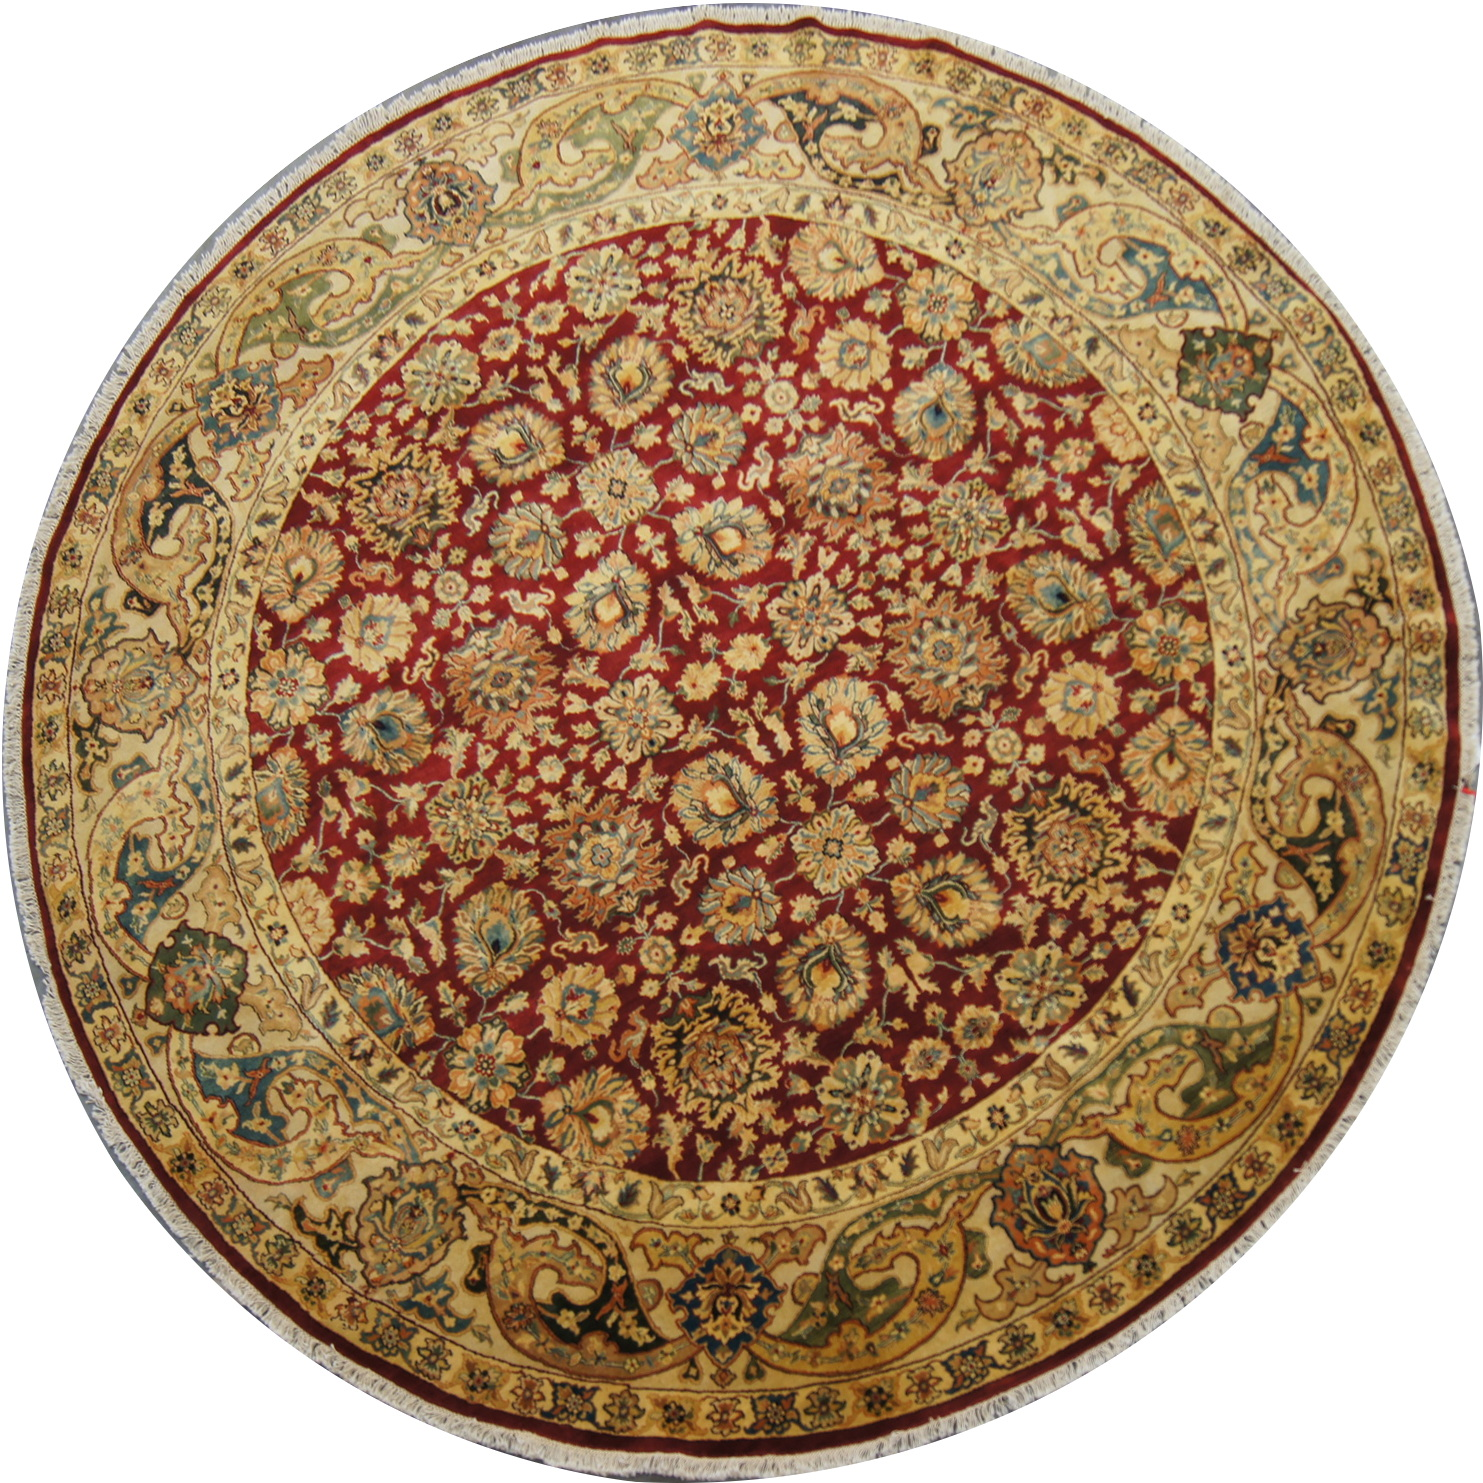 142 New 10 Foot Diameter Hand Knotted Round Oriental Rug